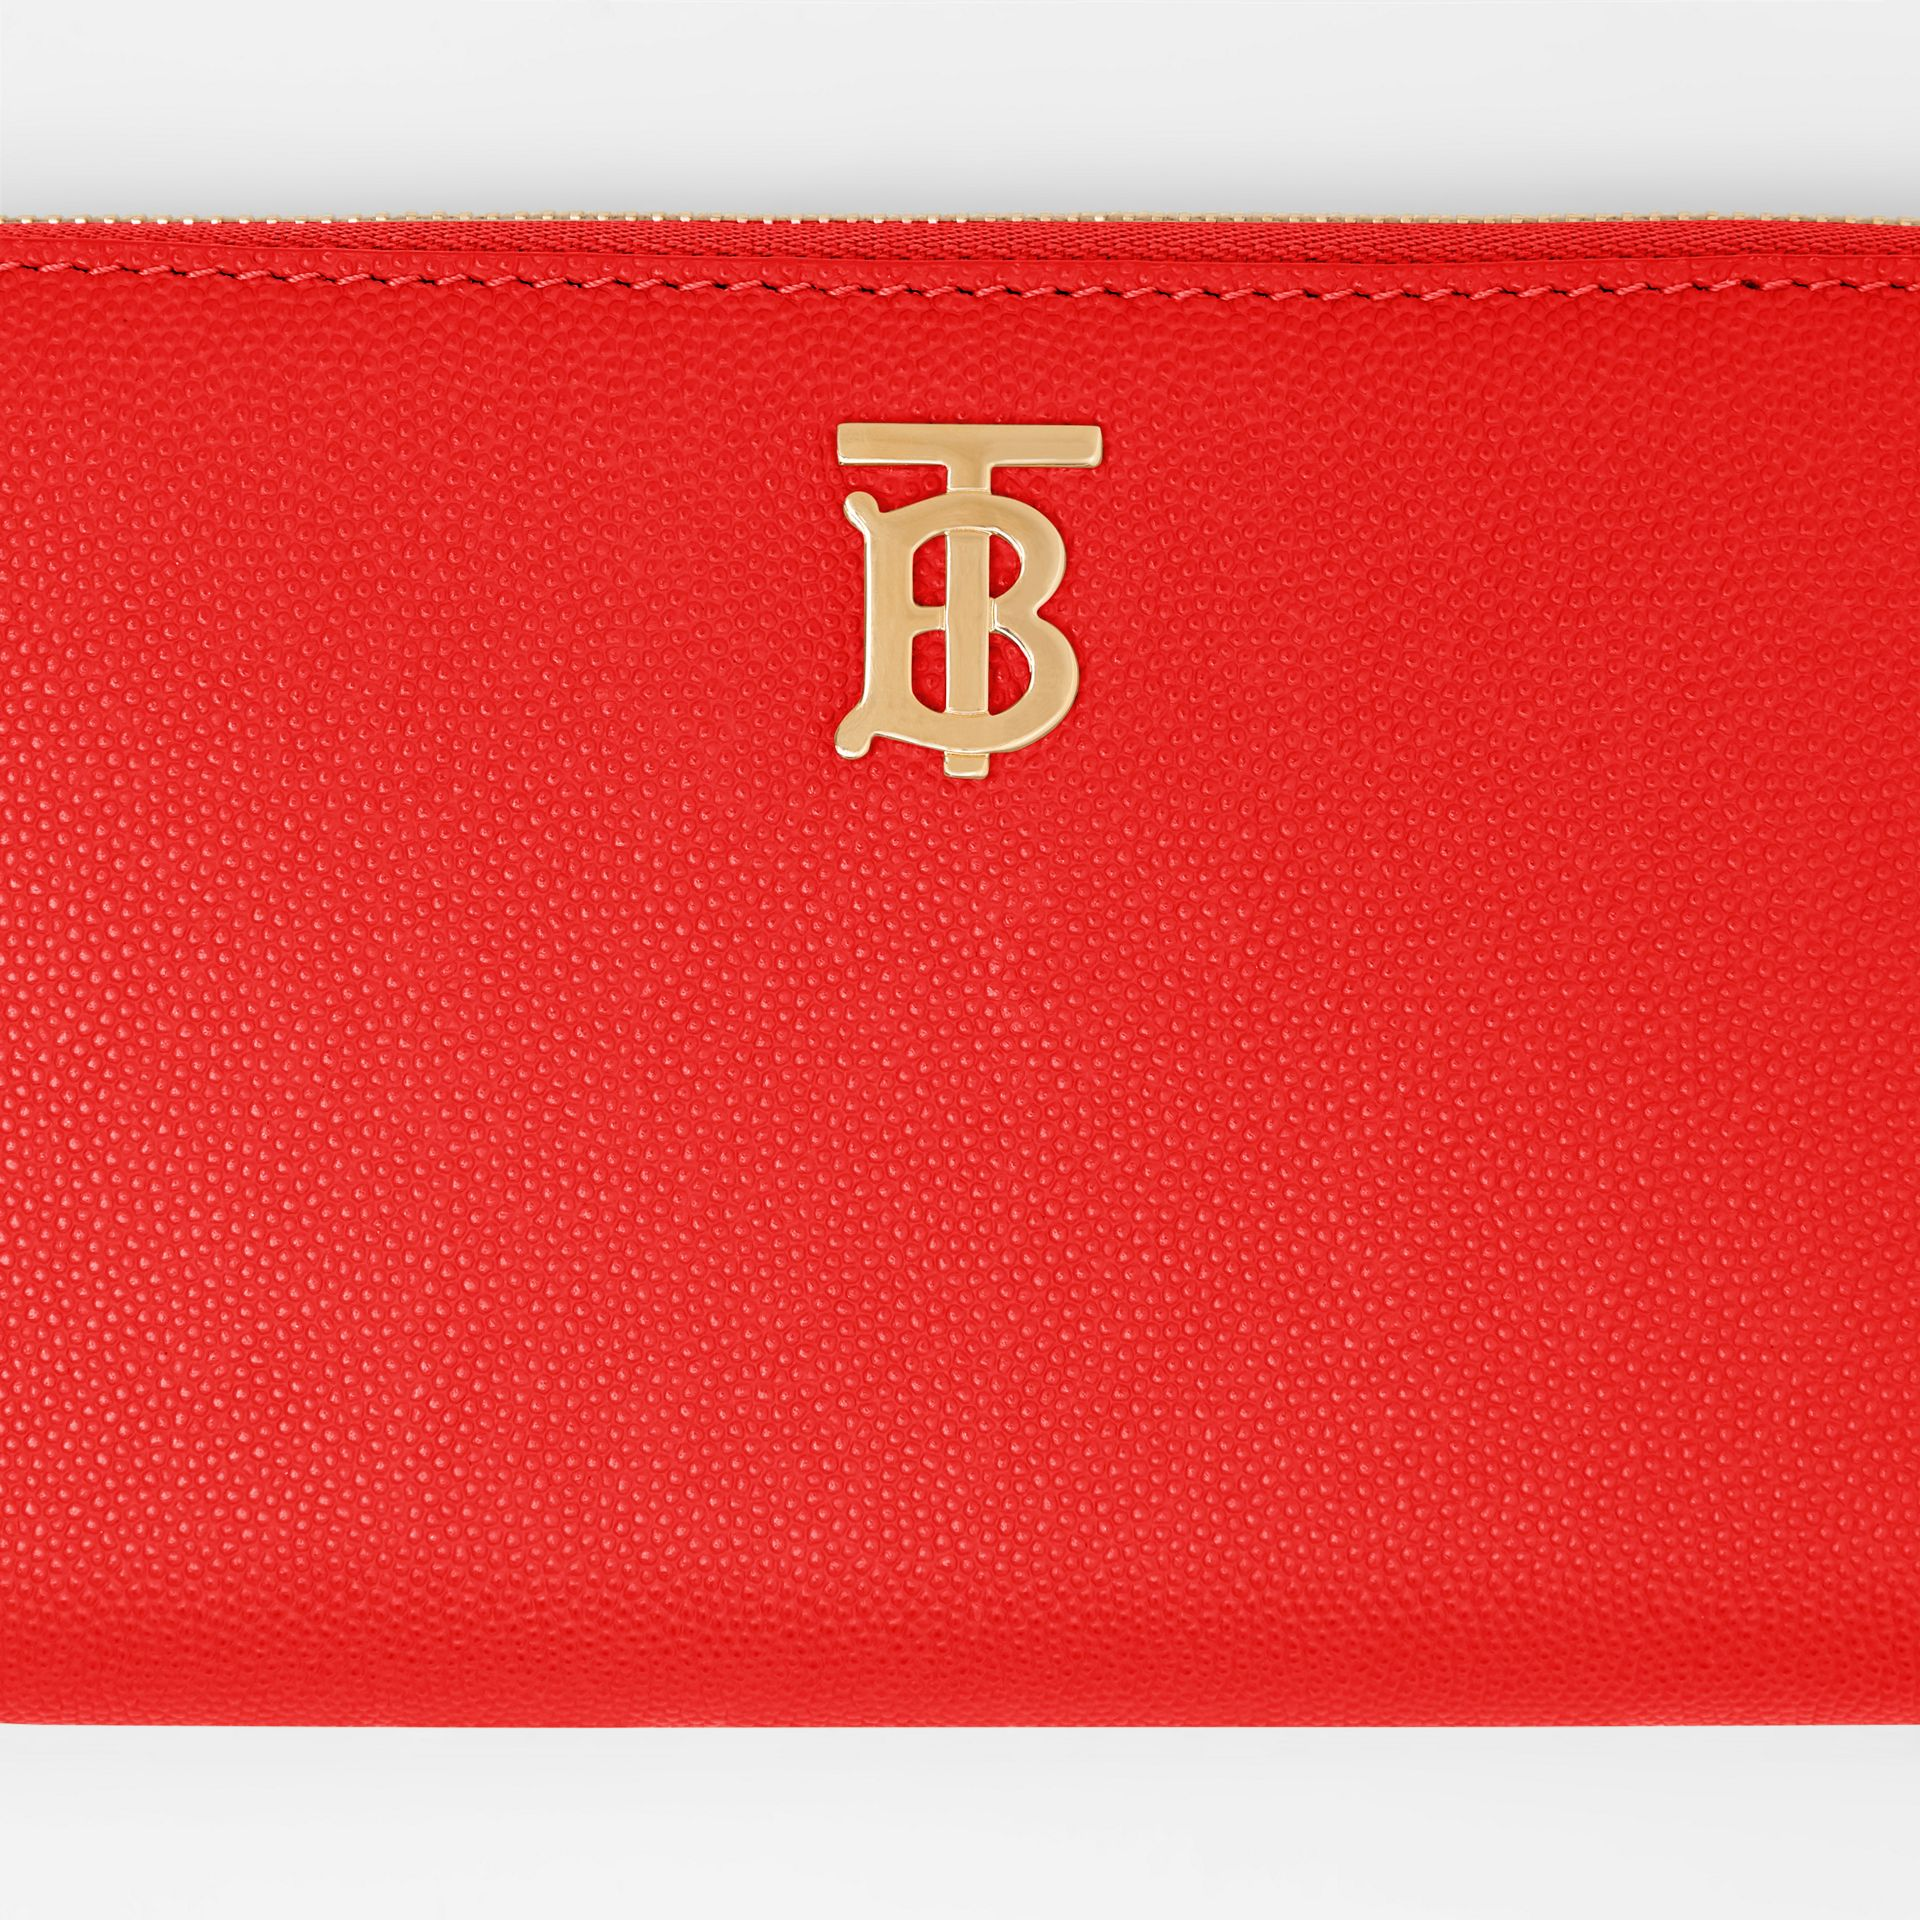 Monogram Motif Grainy Leather Ziparound Wallet in Bright Red - Women | Burberry - gallery image 1